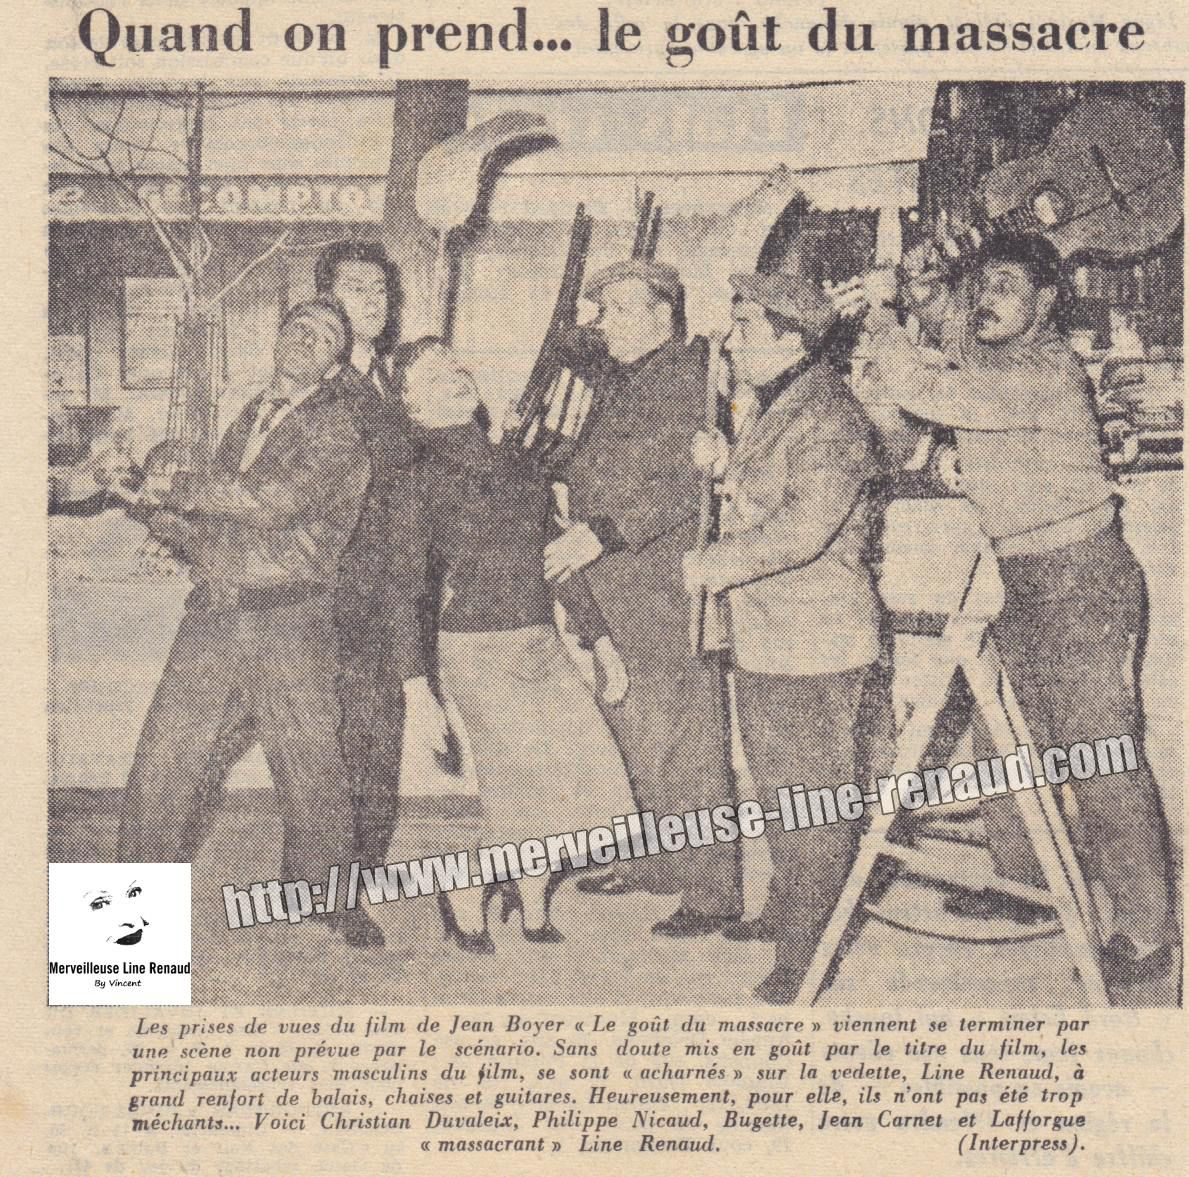 PRESSE: Quand on prend... le goût du Massacre -1957